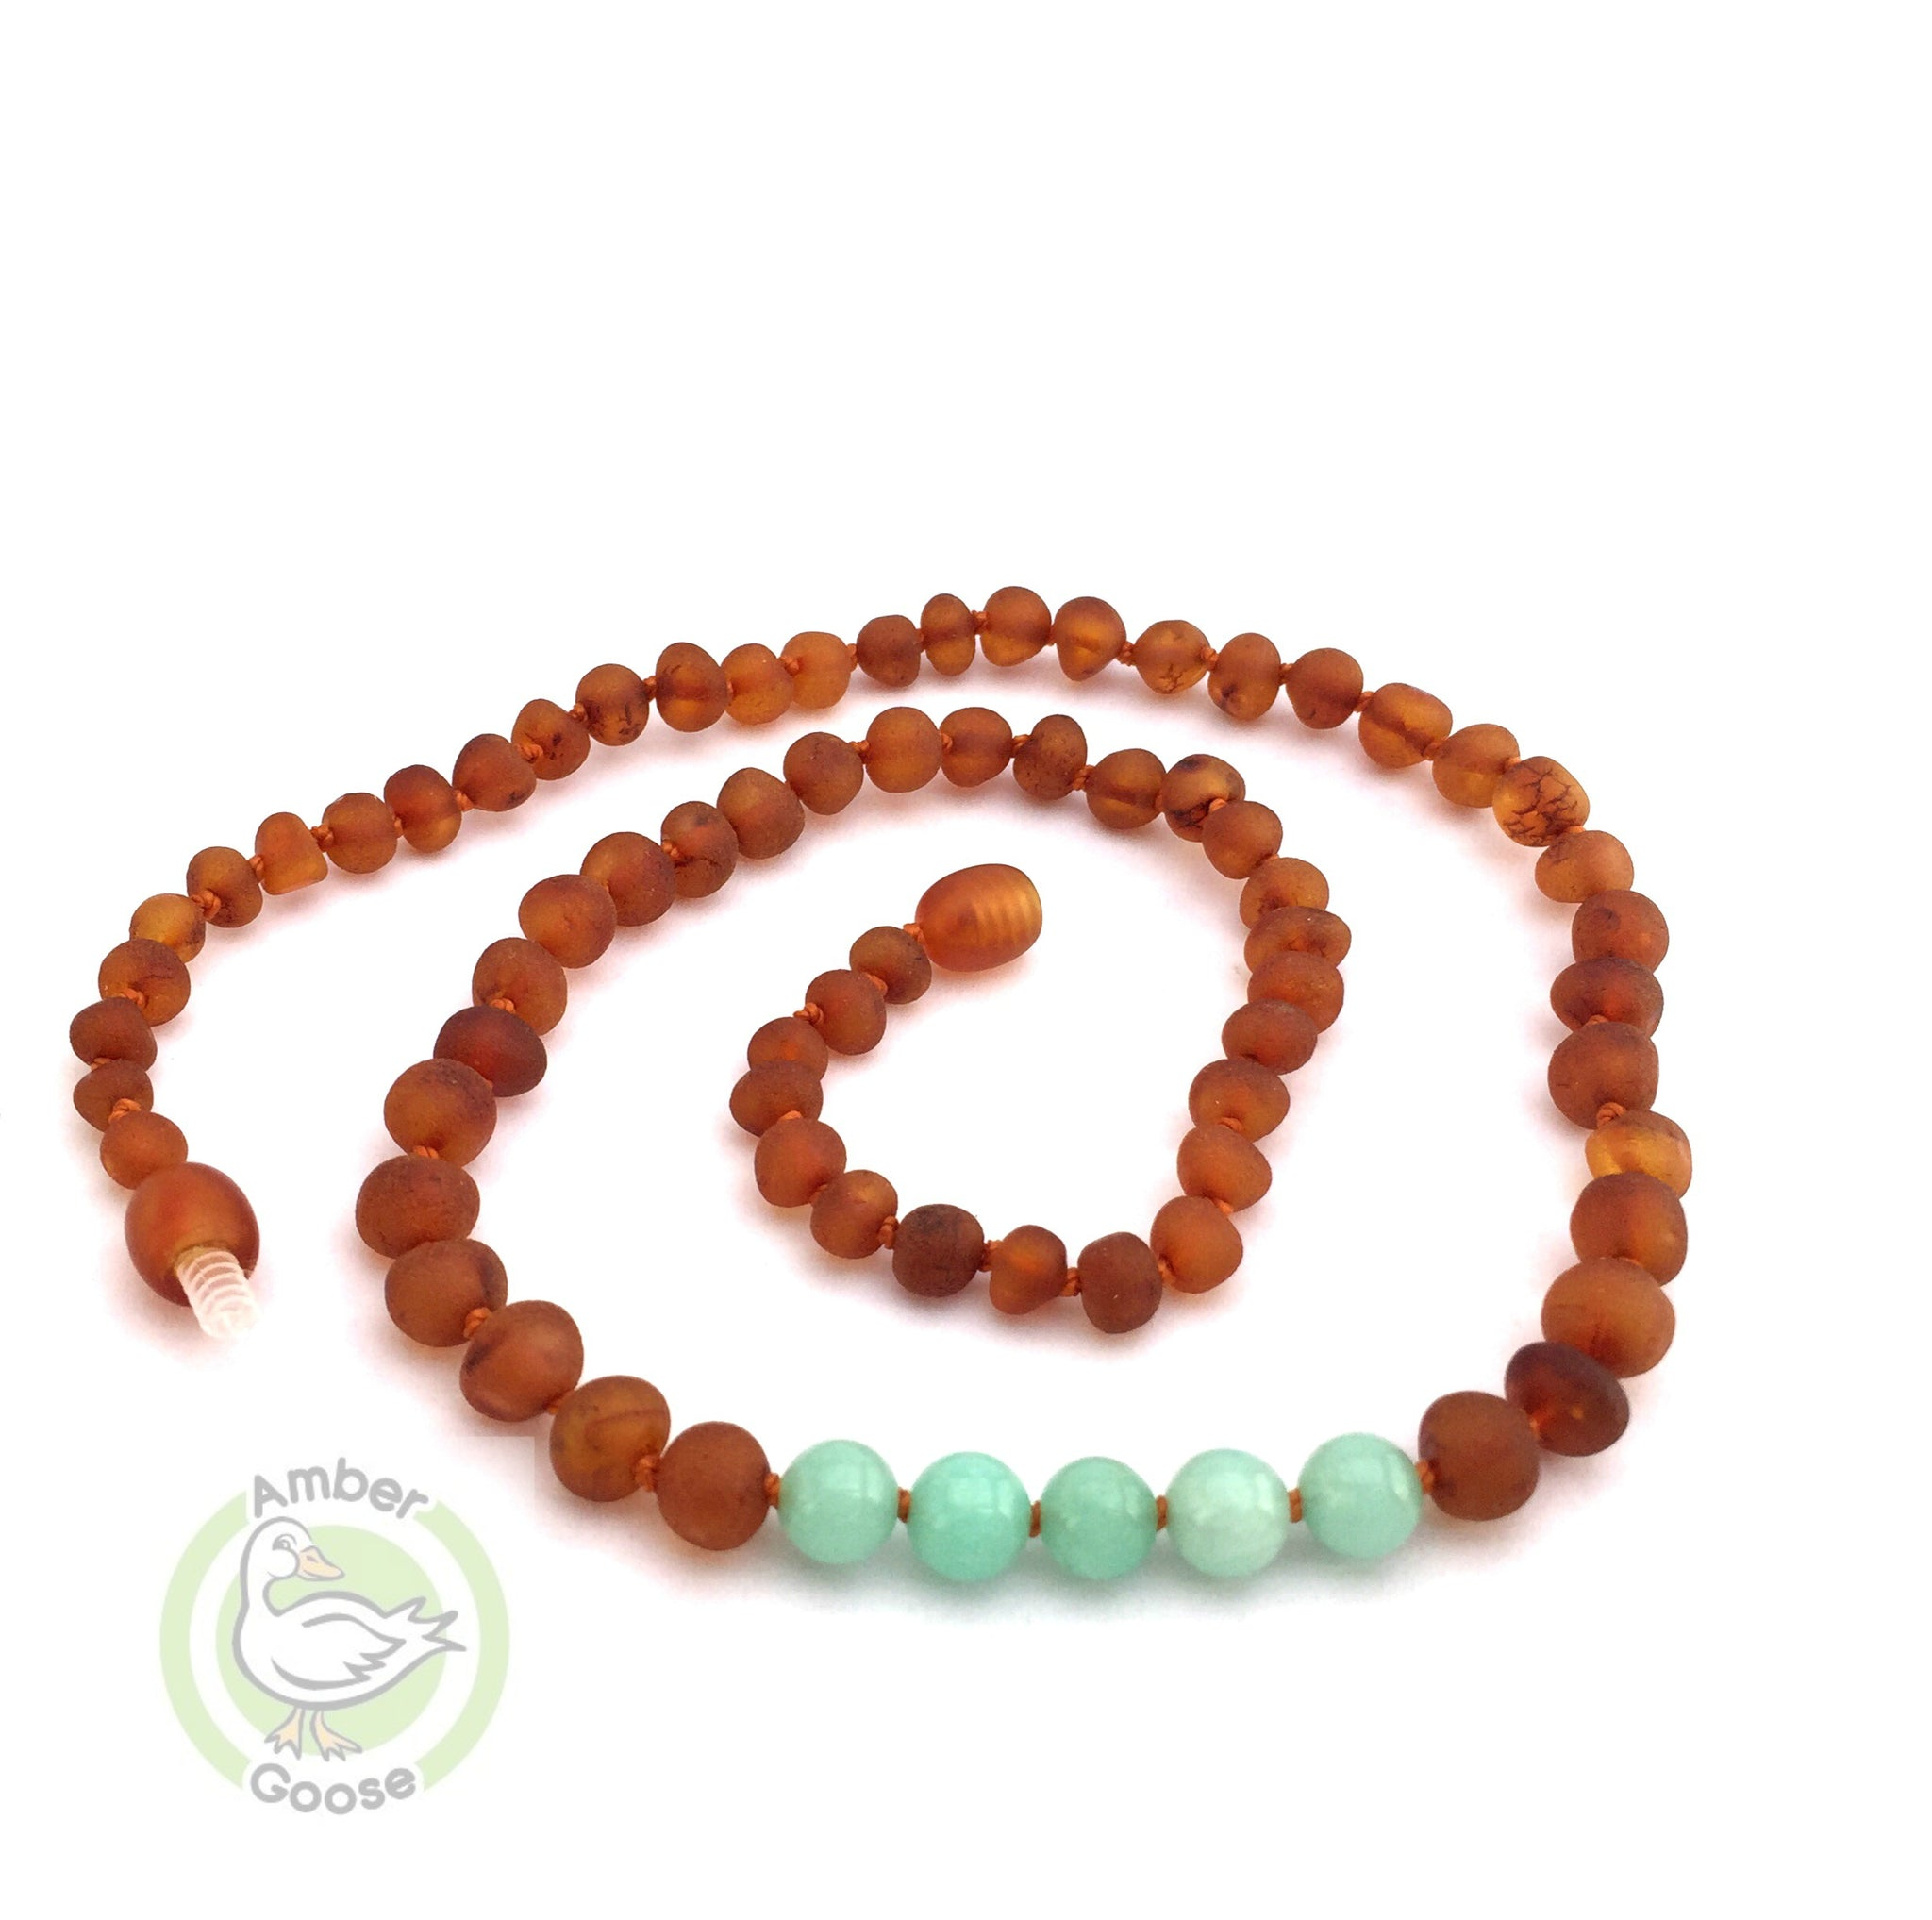 Amber Teething Necklace- Raw Cognac & Amazonite